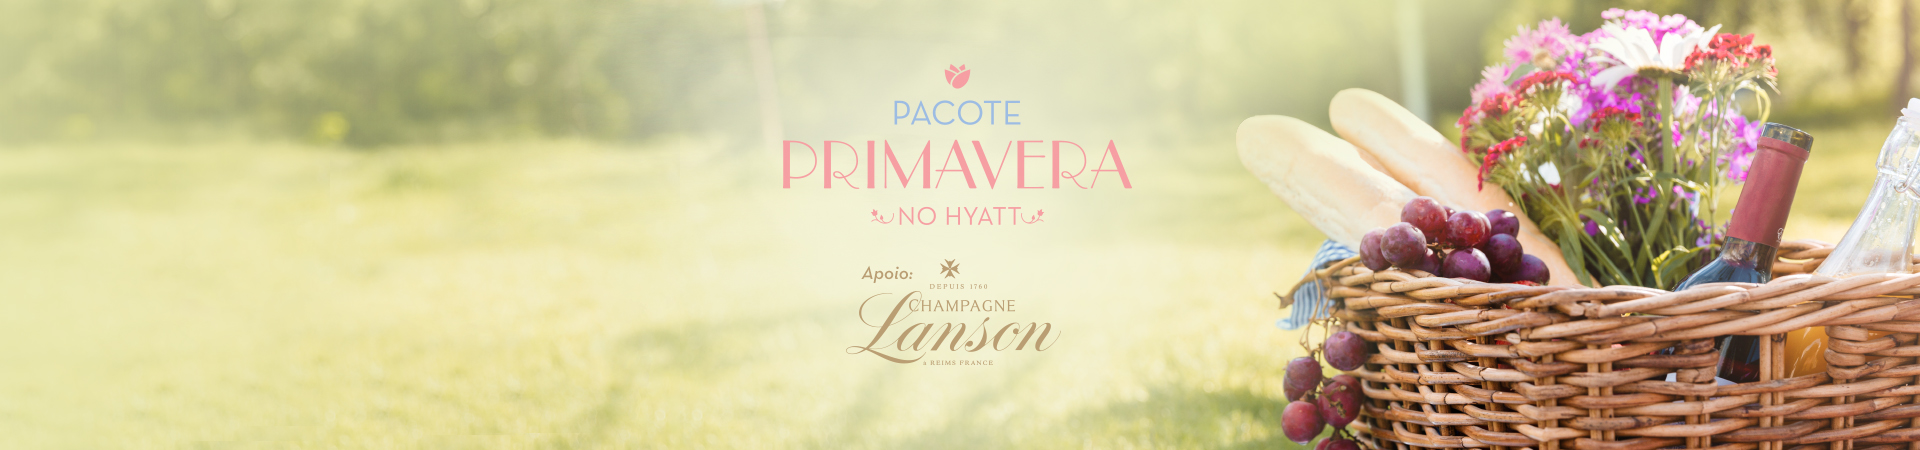 Pacote Primavera no Hyatt com piquenique e bar de rosés